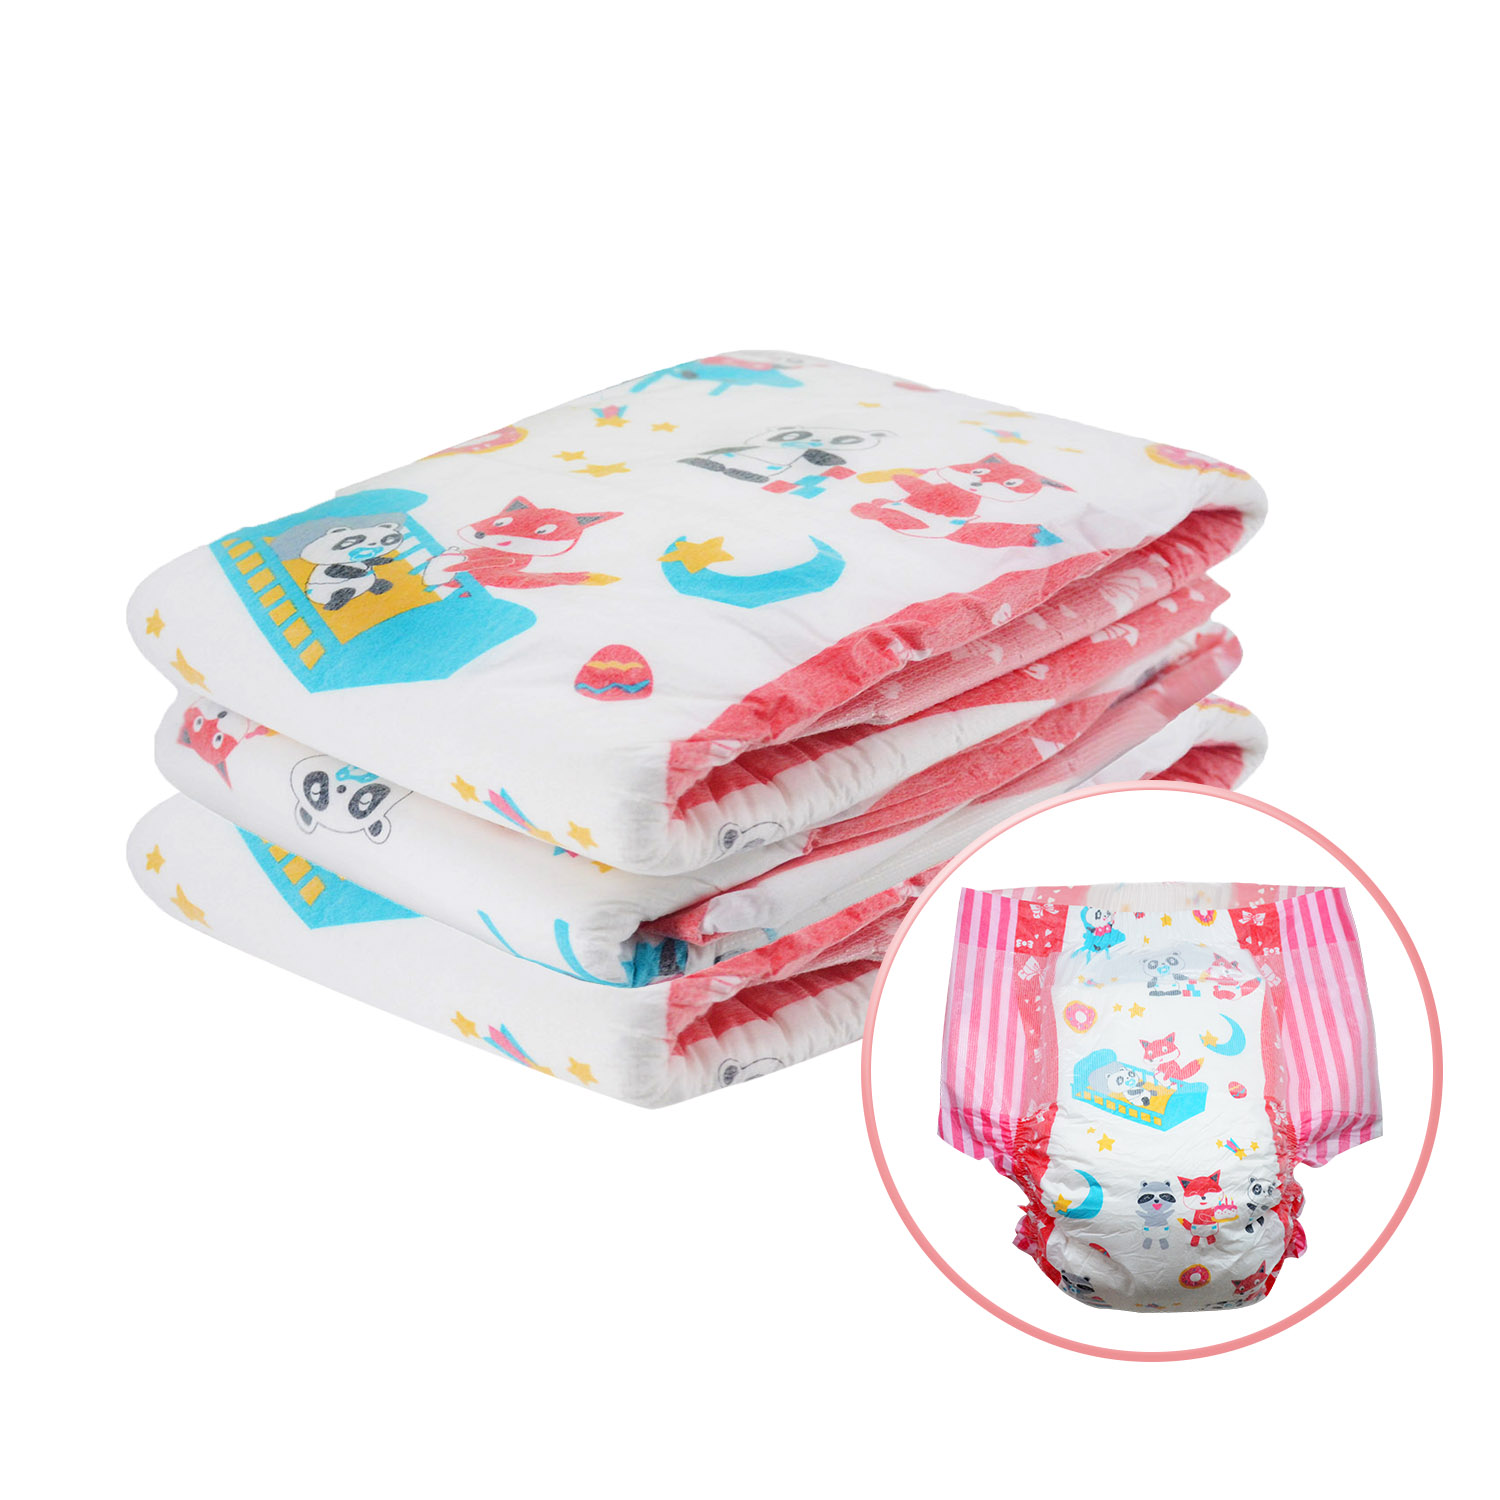 3pcs In A Pack Week Diaper ABDL Extra Large Size Christmas Diaper Stretchy Waist DDLG Diaper Dummy Dom 6000ml Absorbtive